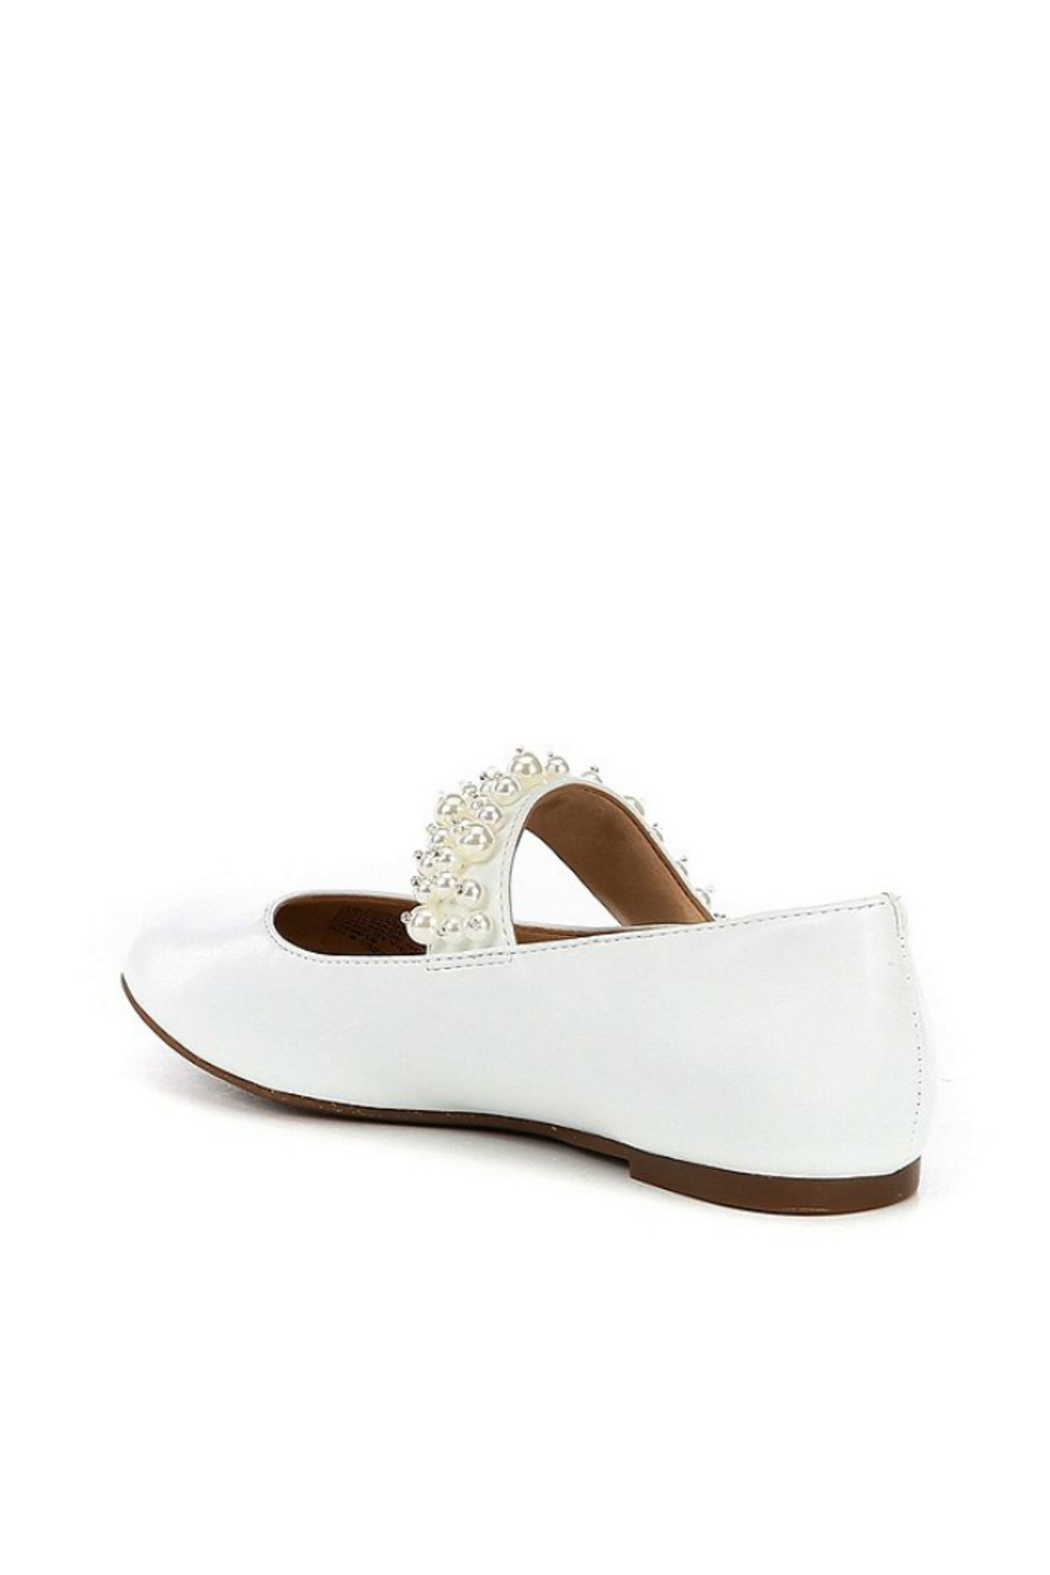 Vince Camuto CG-Persia - Side Cropped Image